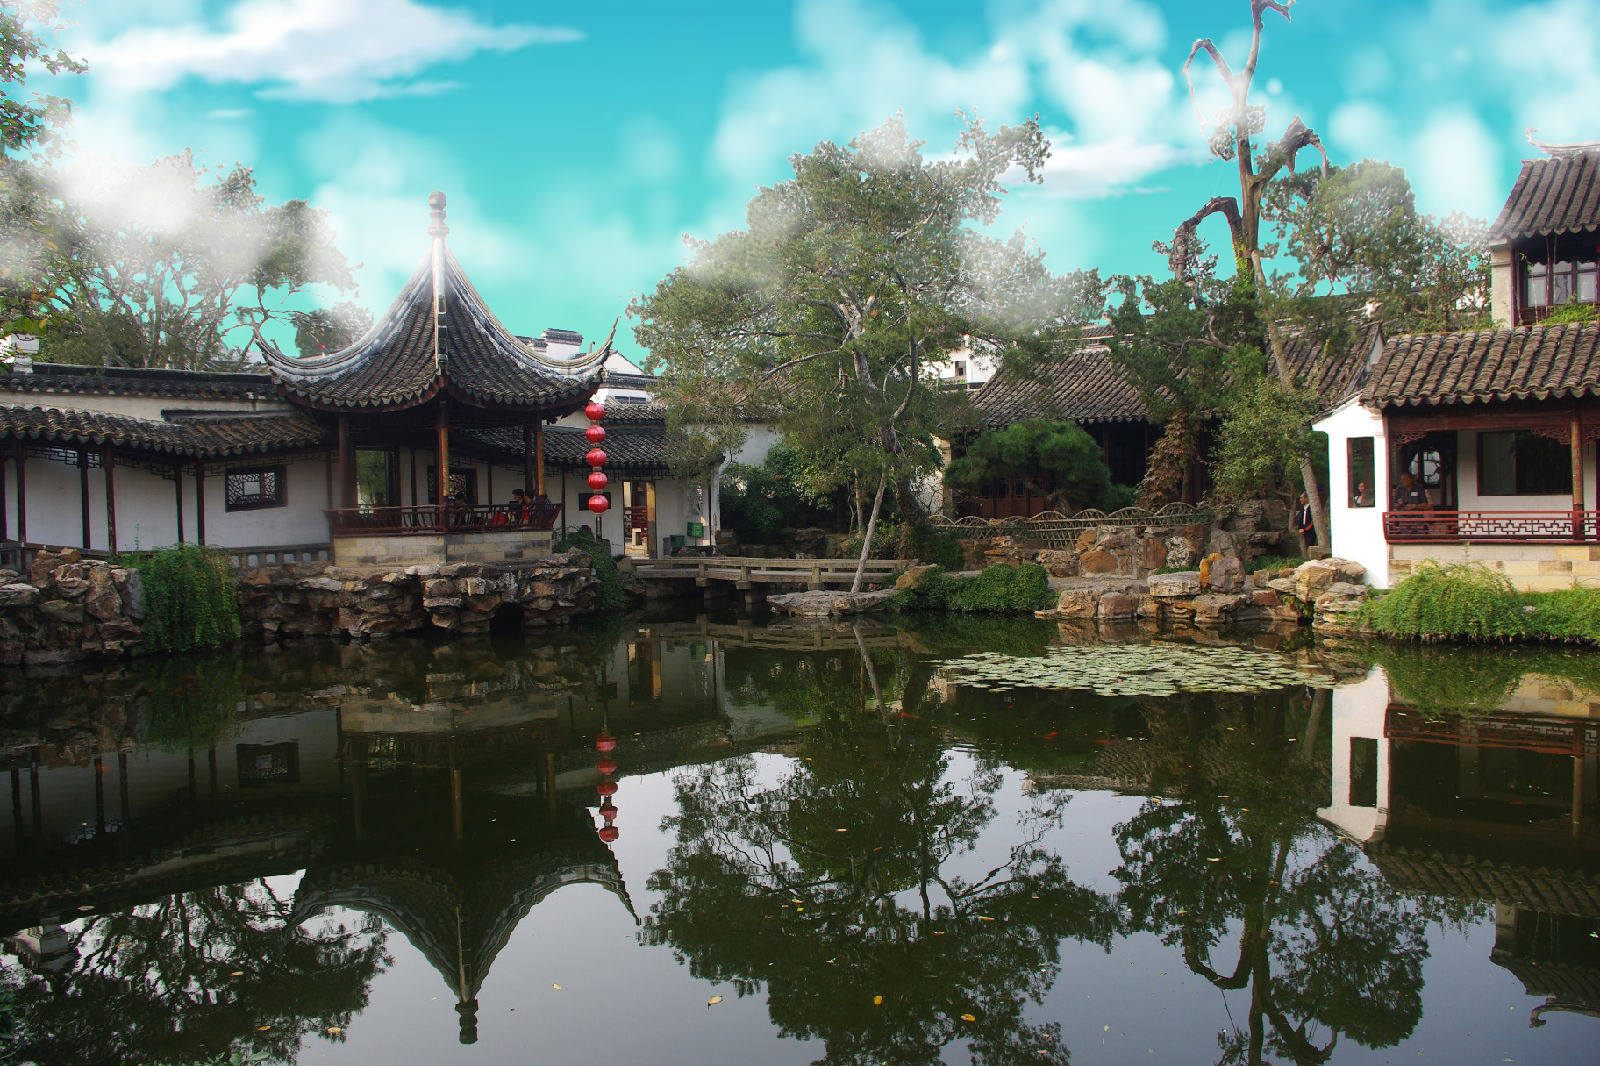 Shanghai cool places - Shang hai The Hottest Cities China ...